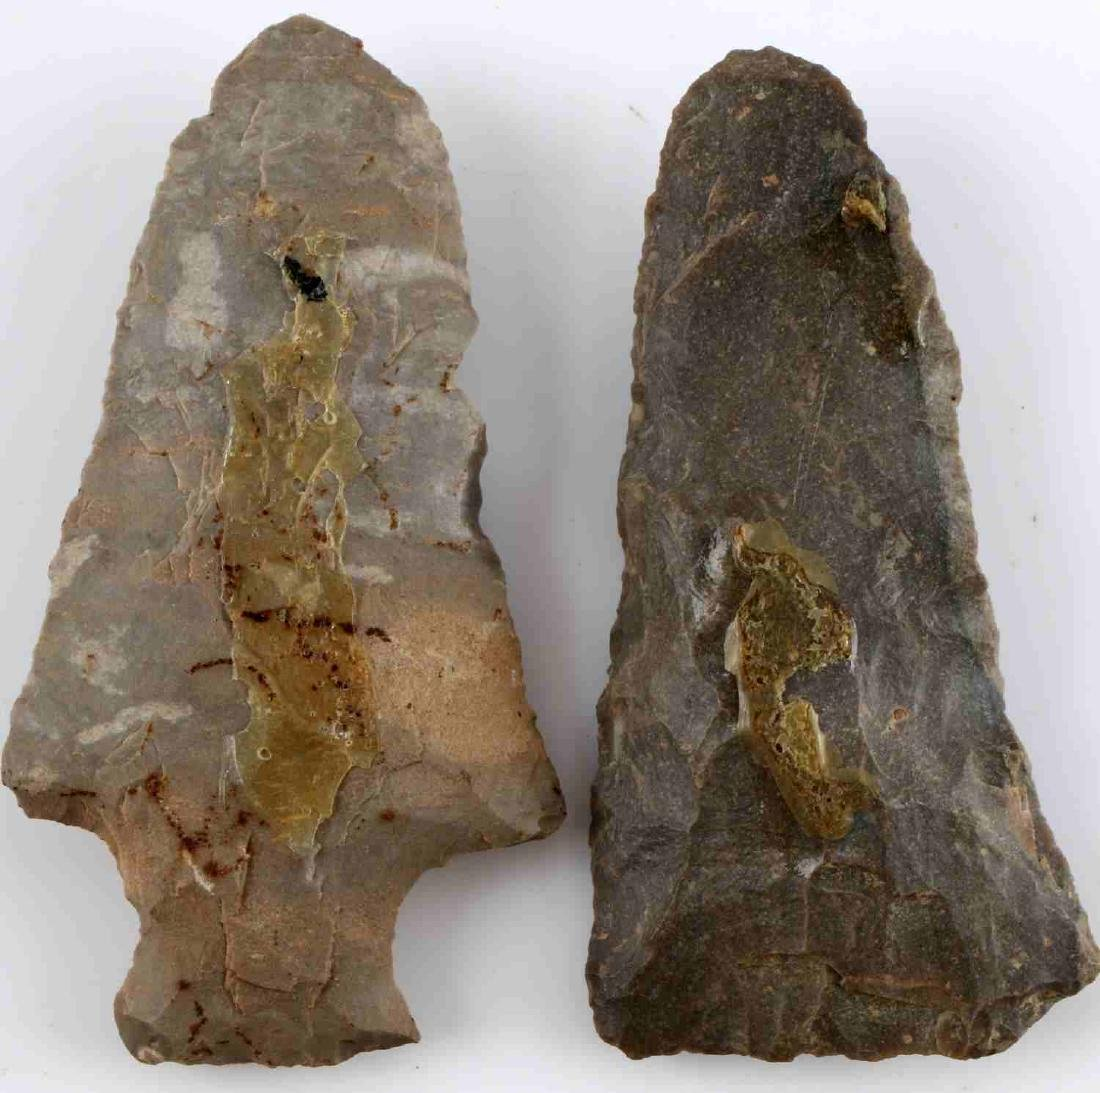 LOT OF 16 ARROWHEAD POINTS SOME STEMMED 2-3 INCH - 4